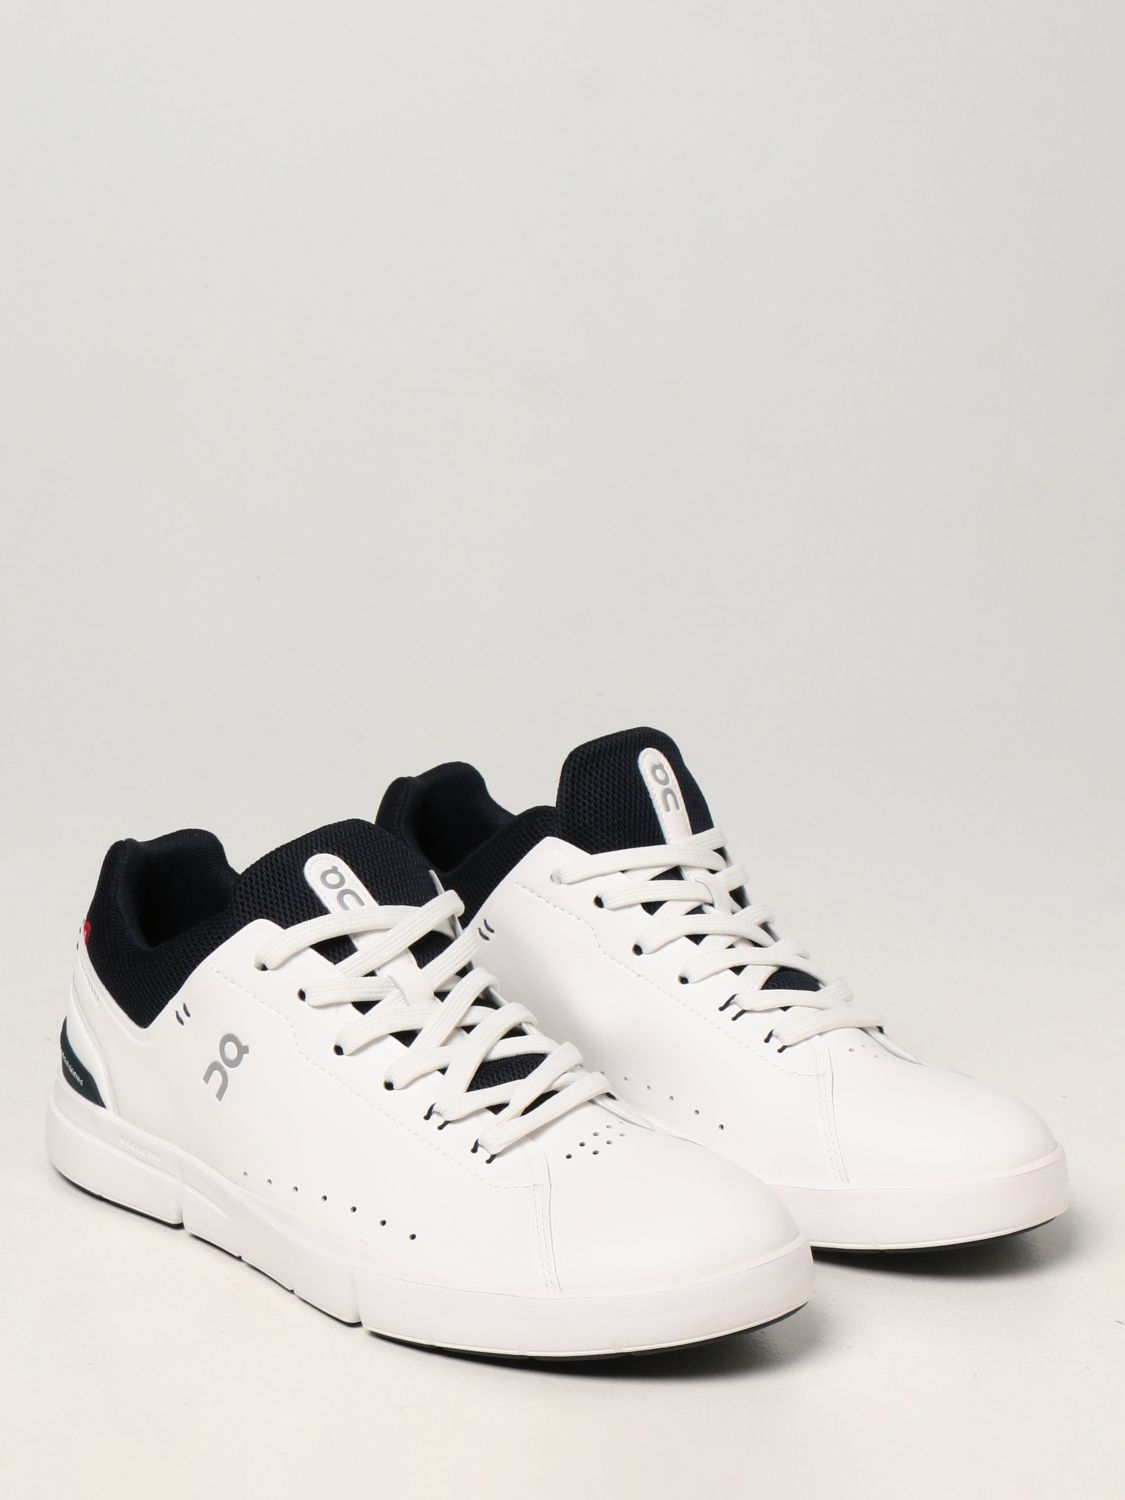 Baskets The Roger: Chaussures homme The Roger blanc 2